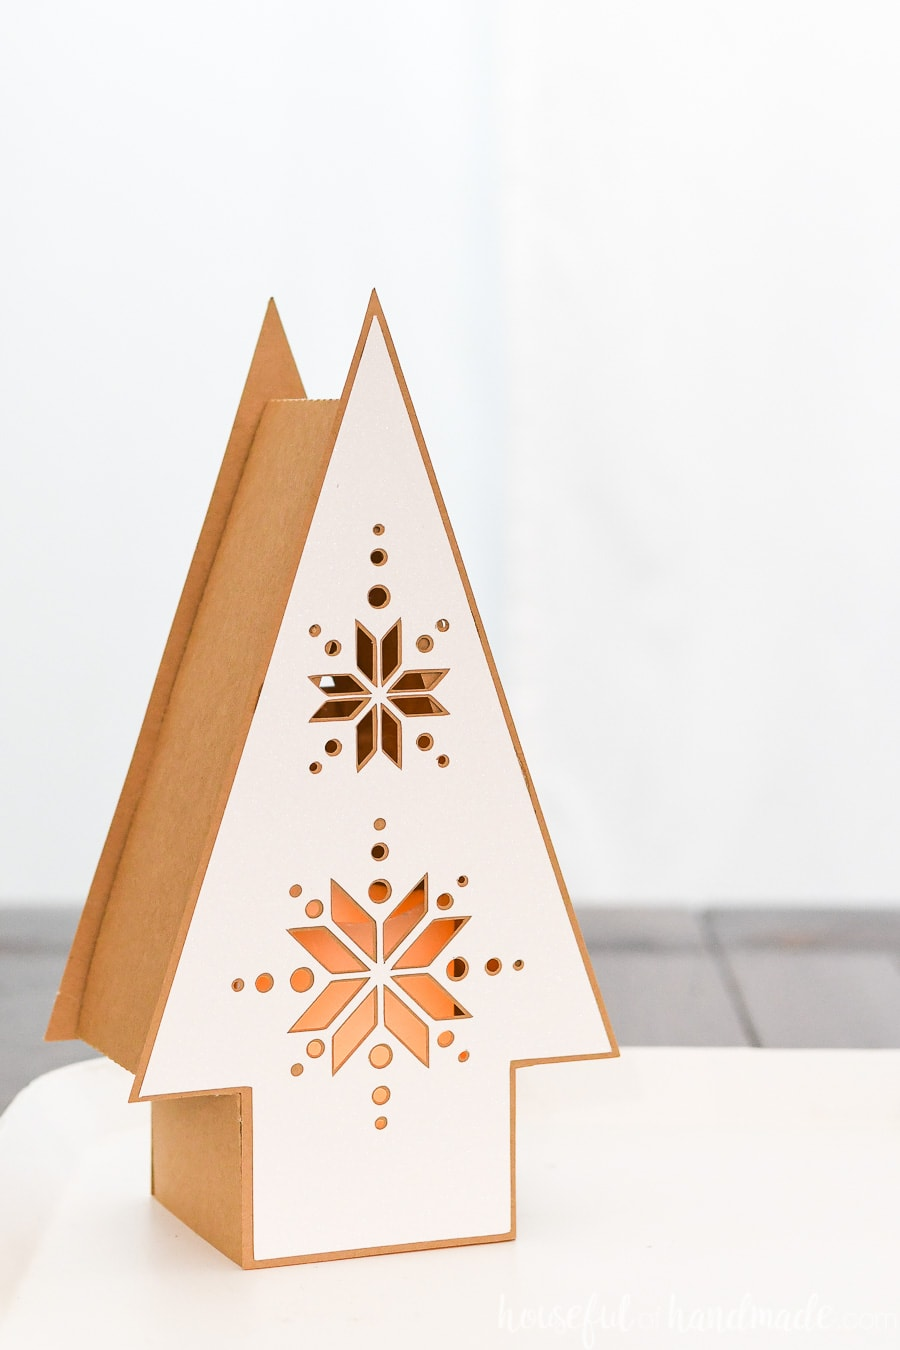 Beautiful Hygge paper Christmas lantern made to look like wood lanterns but made from paper.